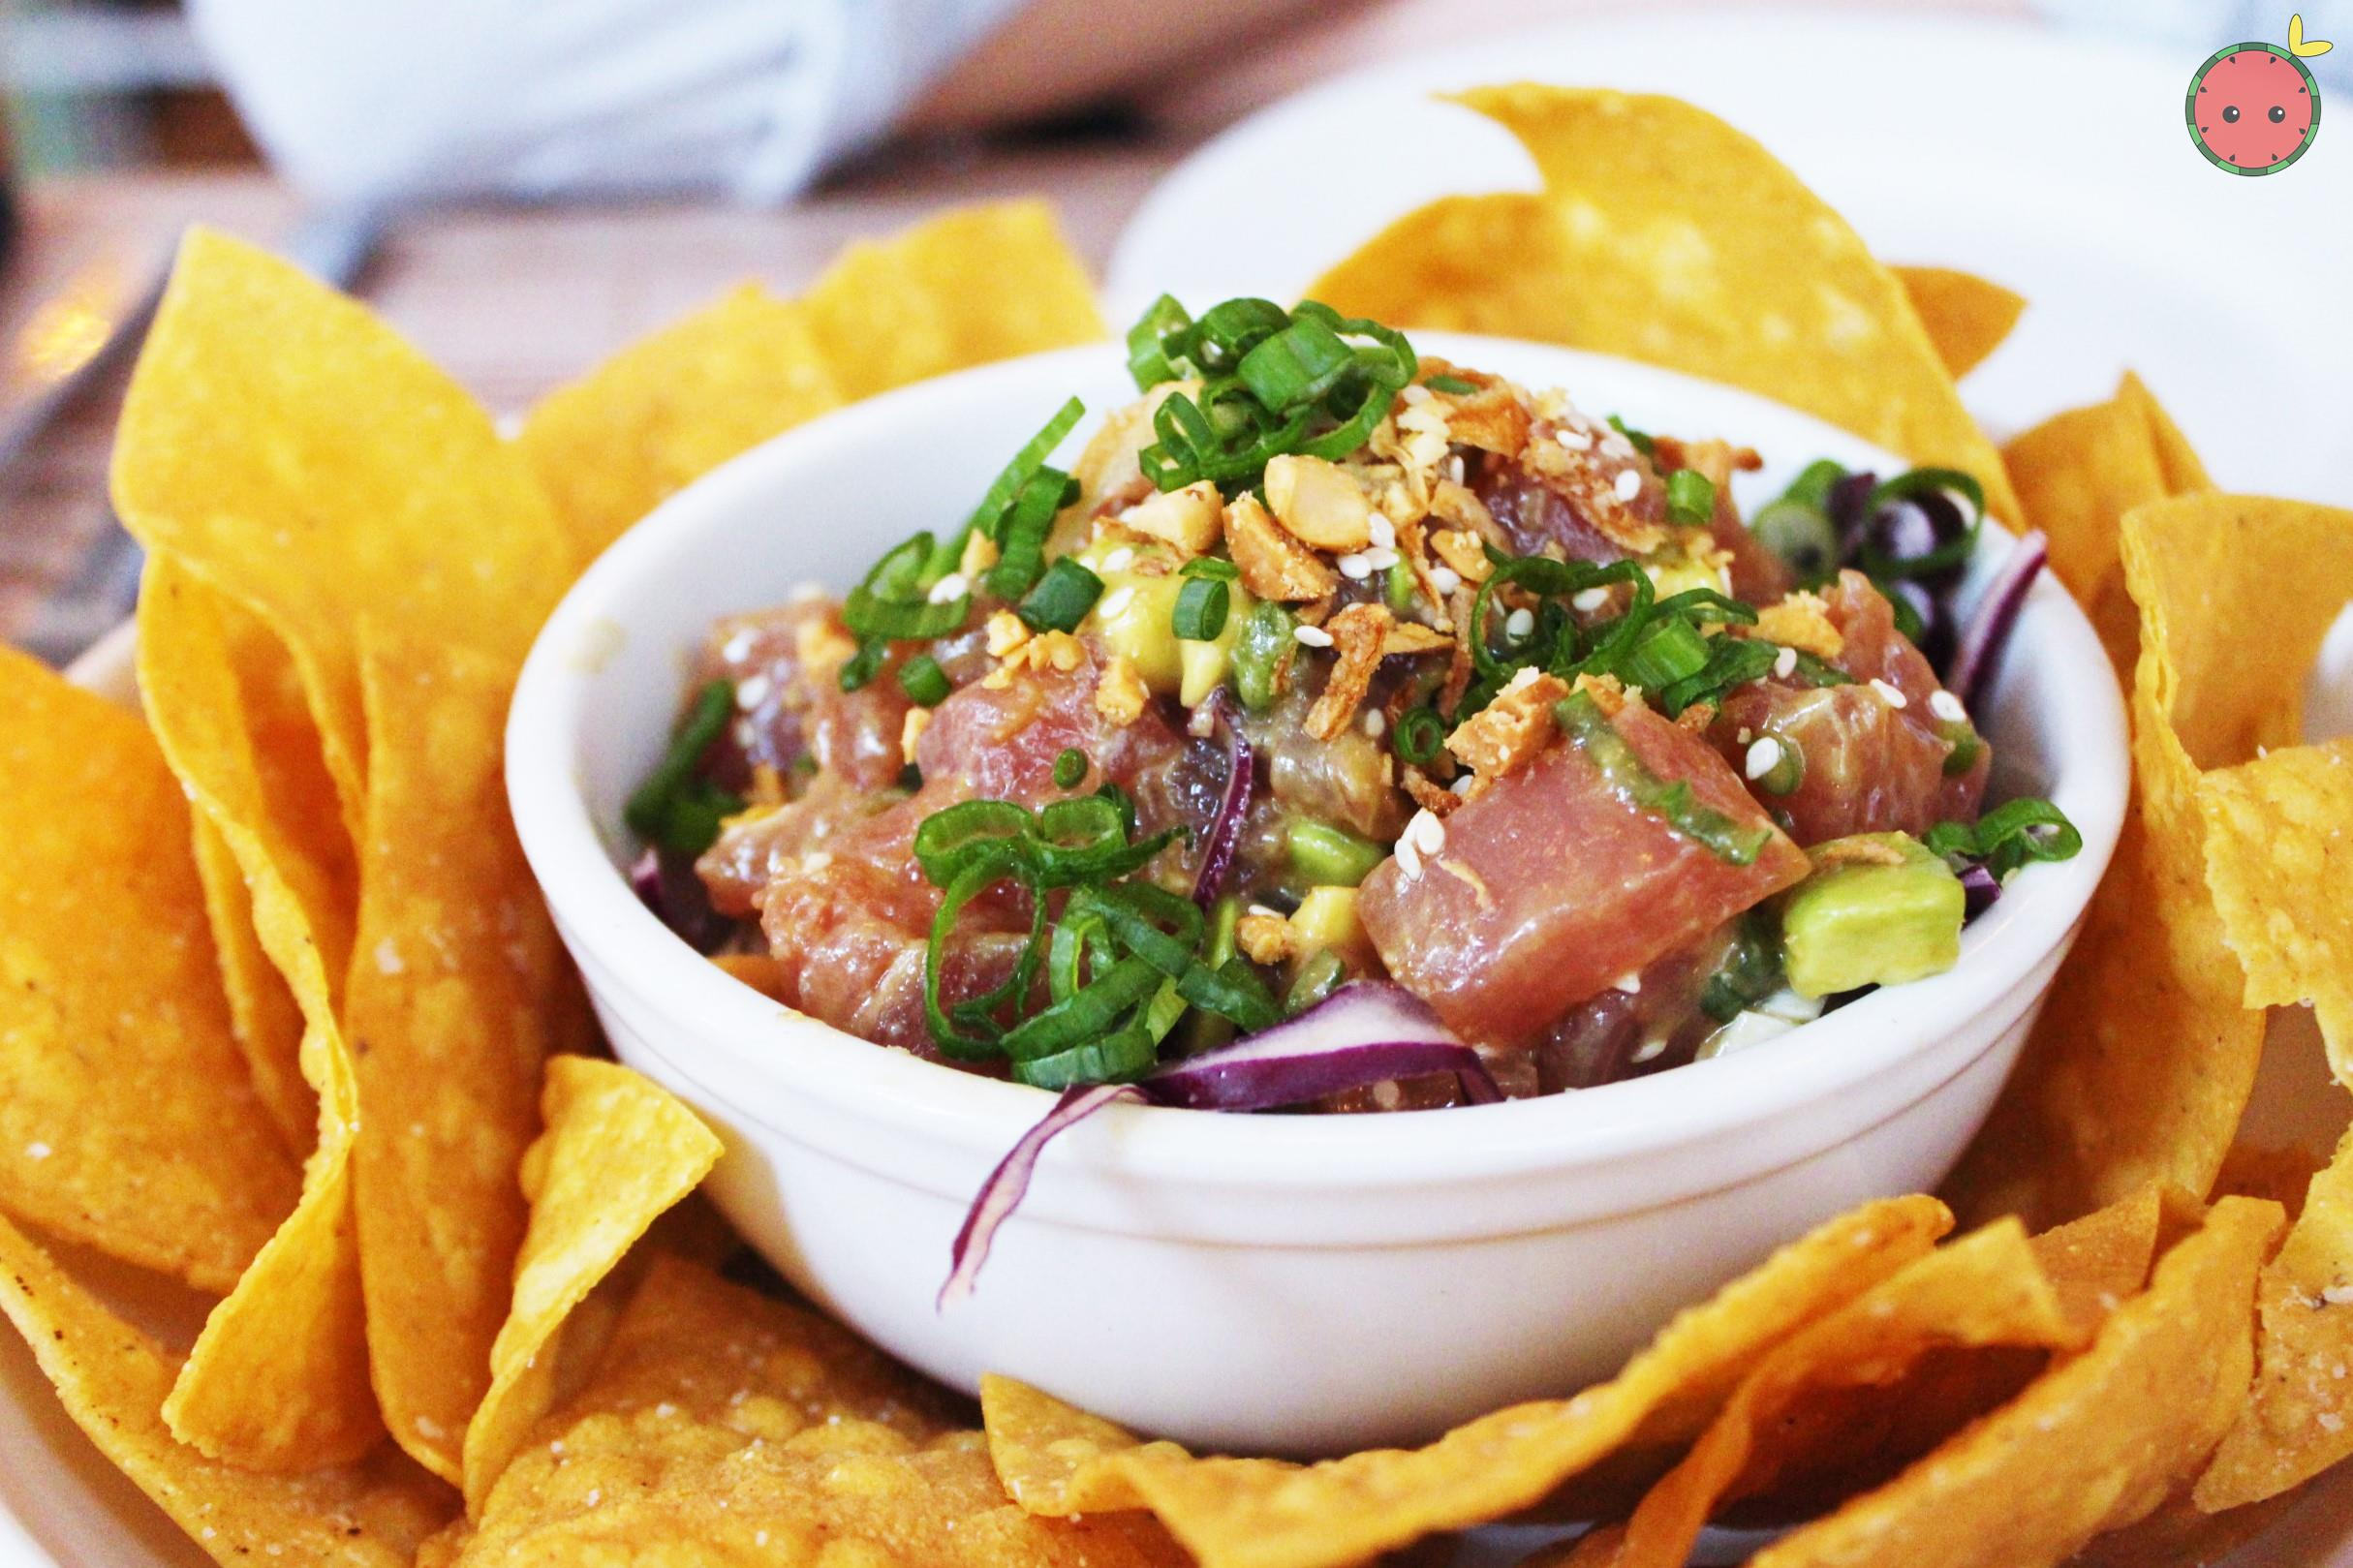 Poke with ponzu, peanuts, and avocado